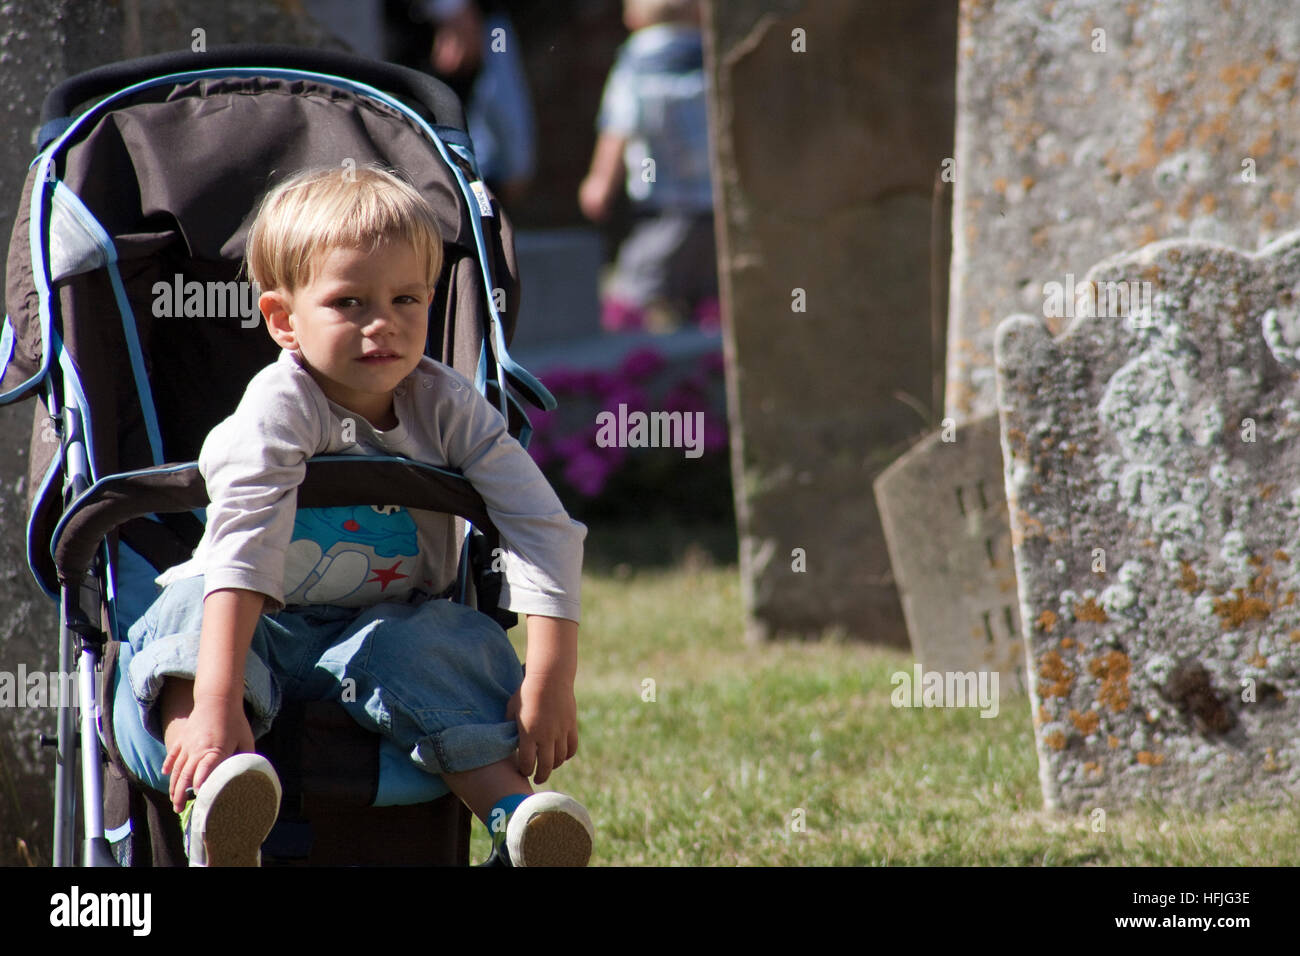 Small boy in a buggy/stroller and a churchyard looks at the camera Stock Photo